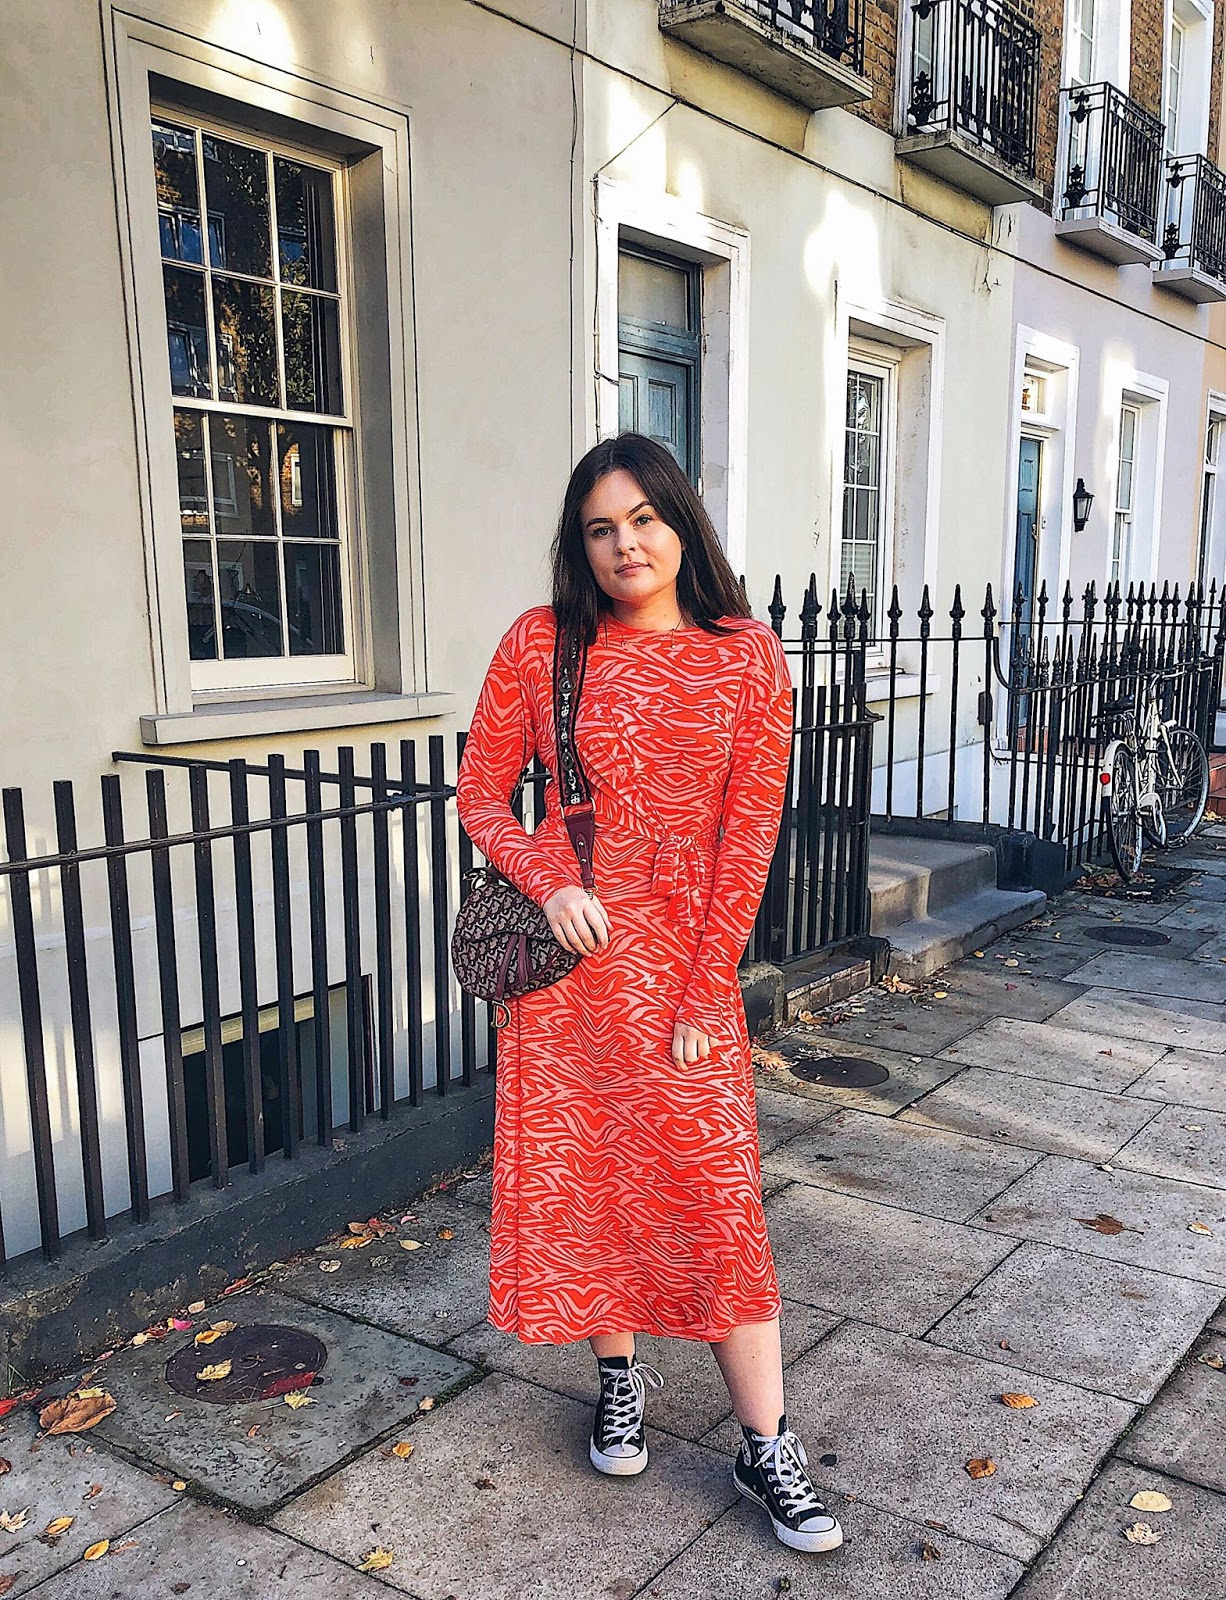 asos maxi tie animal print dress, asos animal print dress, asos zebra dress, orange zebra dress, relationship advice mid-twenties, do i stay with my boyfriend, love life in your mid-twenties, dating advice in your mid-twenties